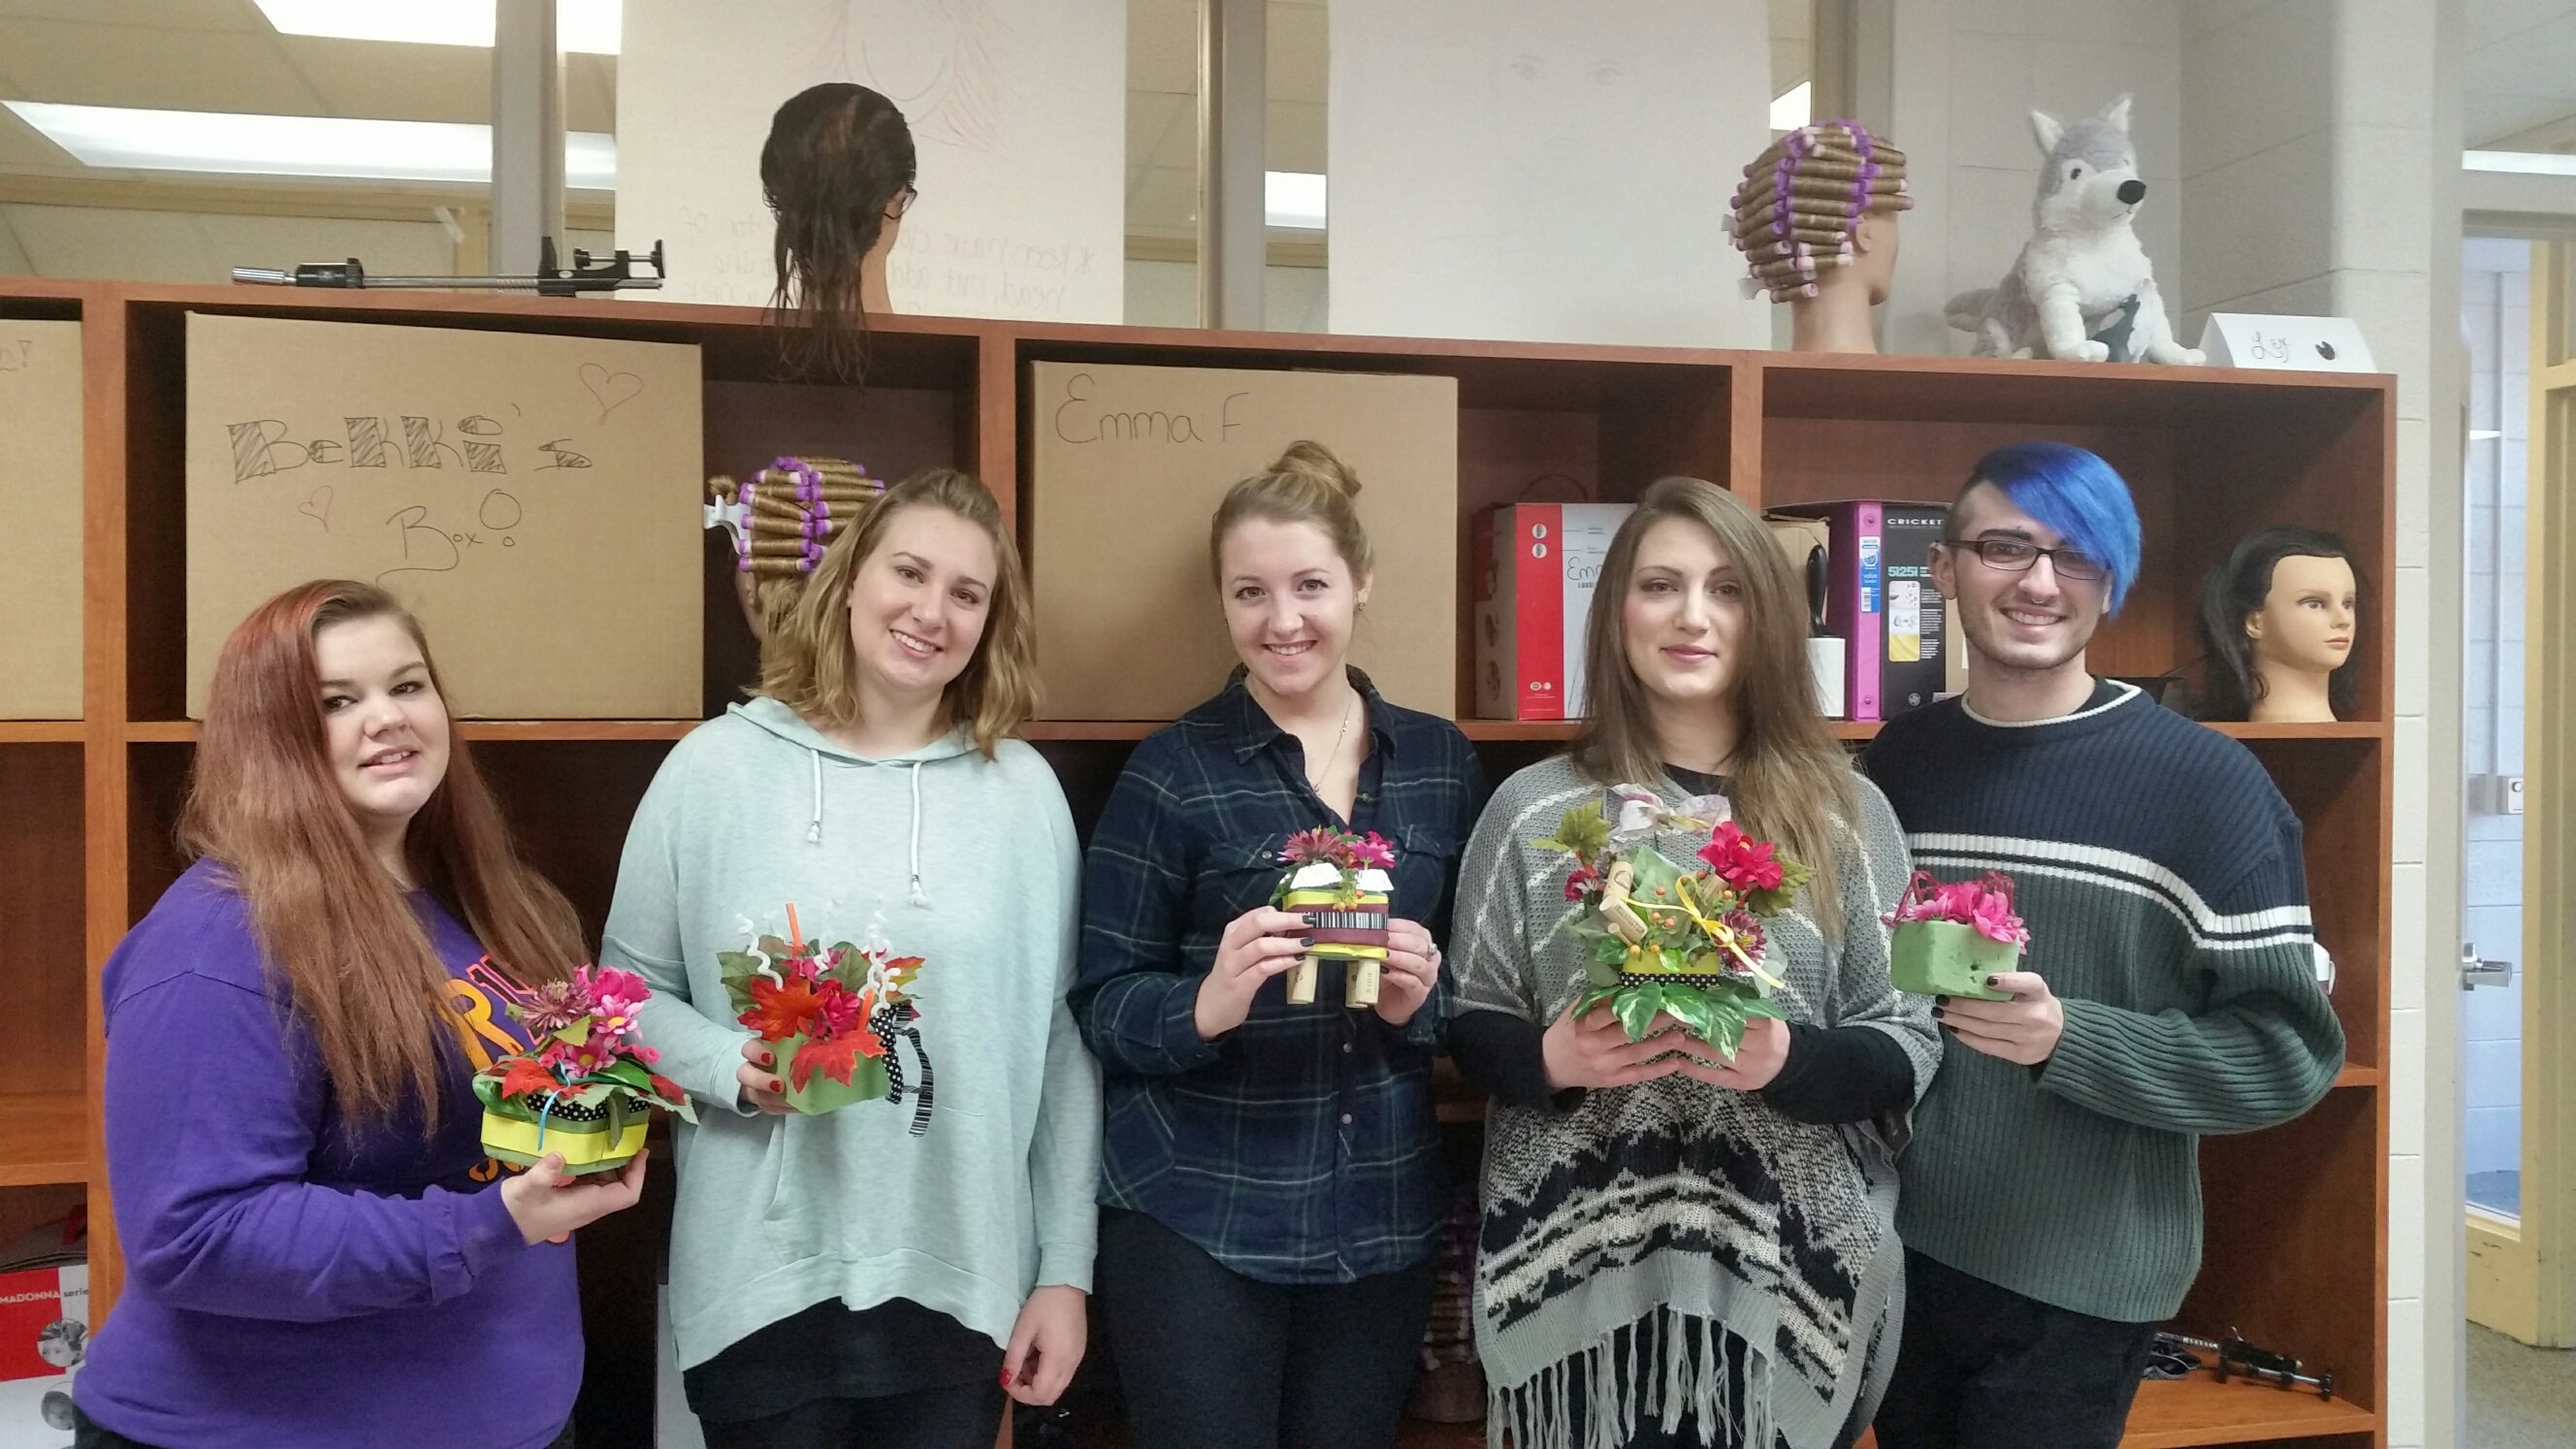 Cosmetology Moraine Park students holding artwork creations